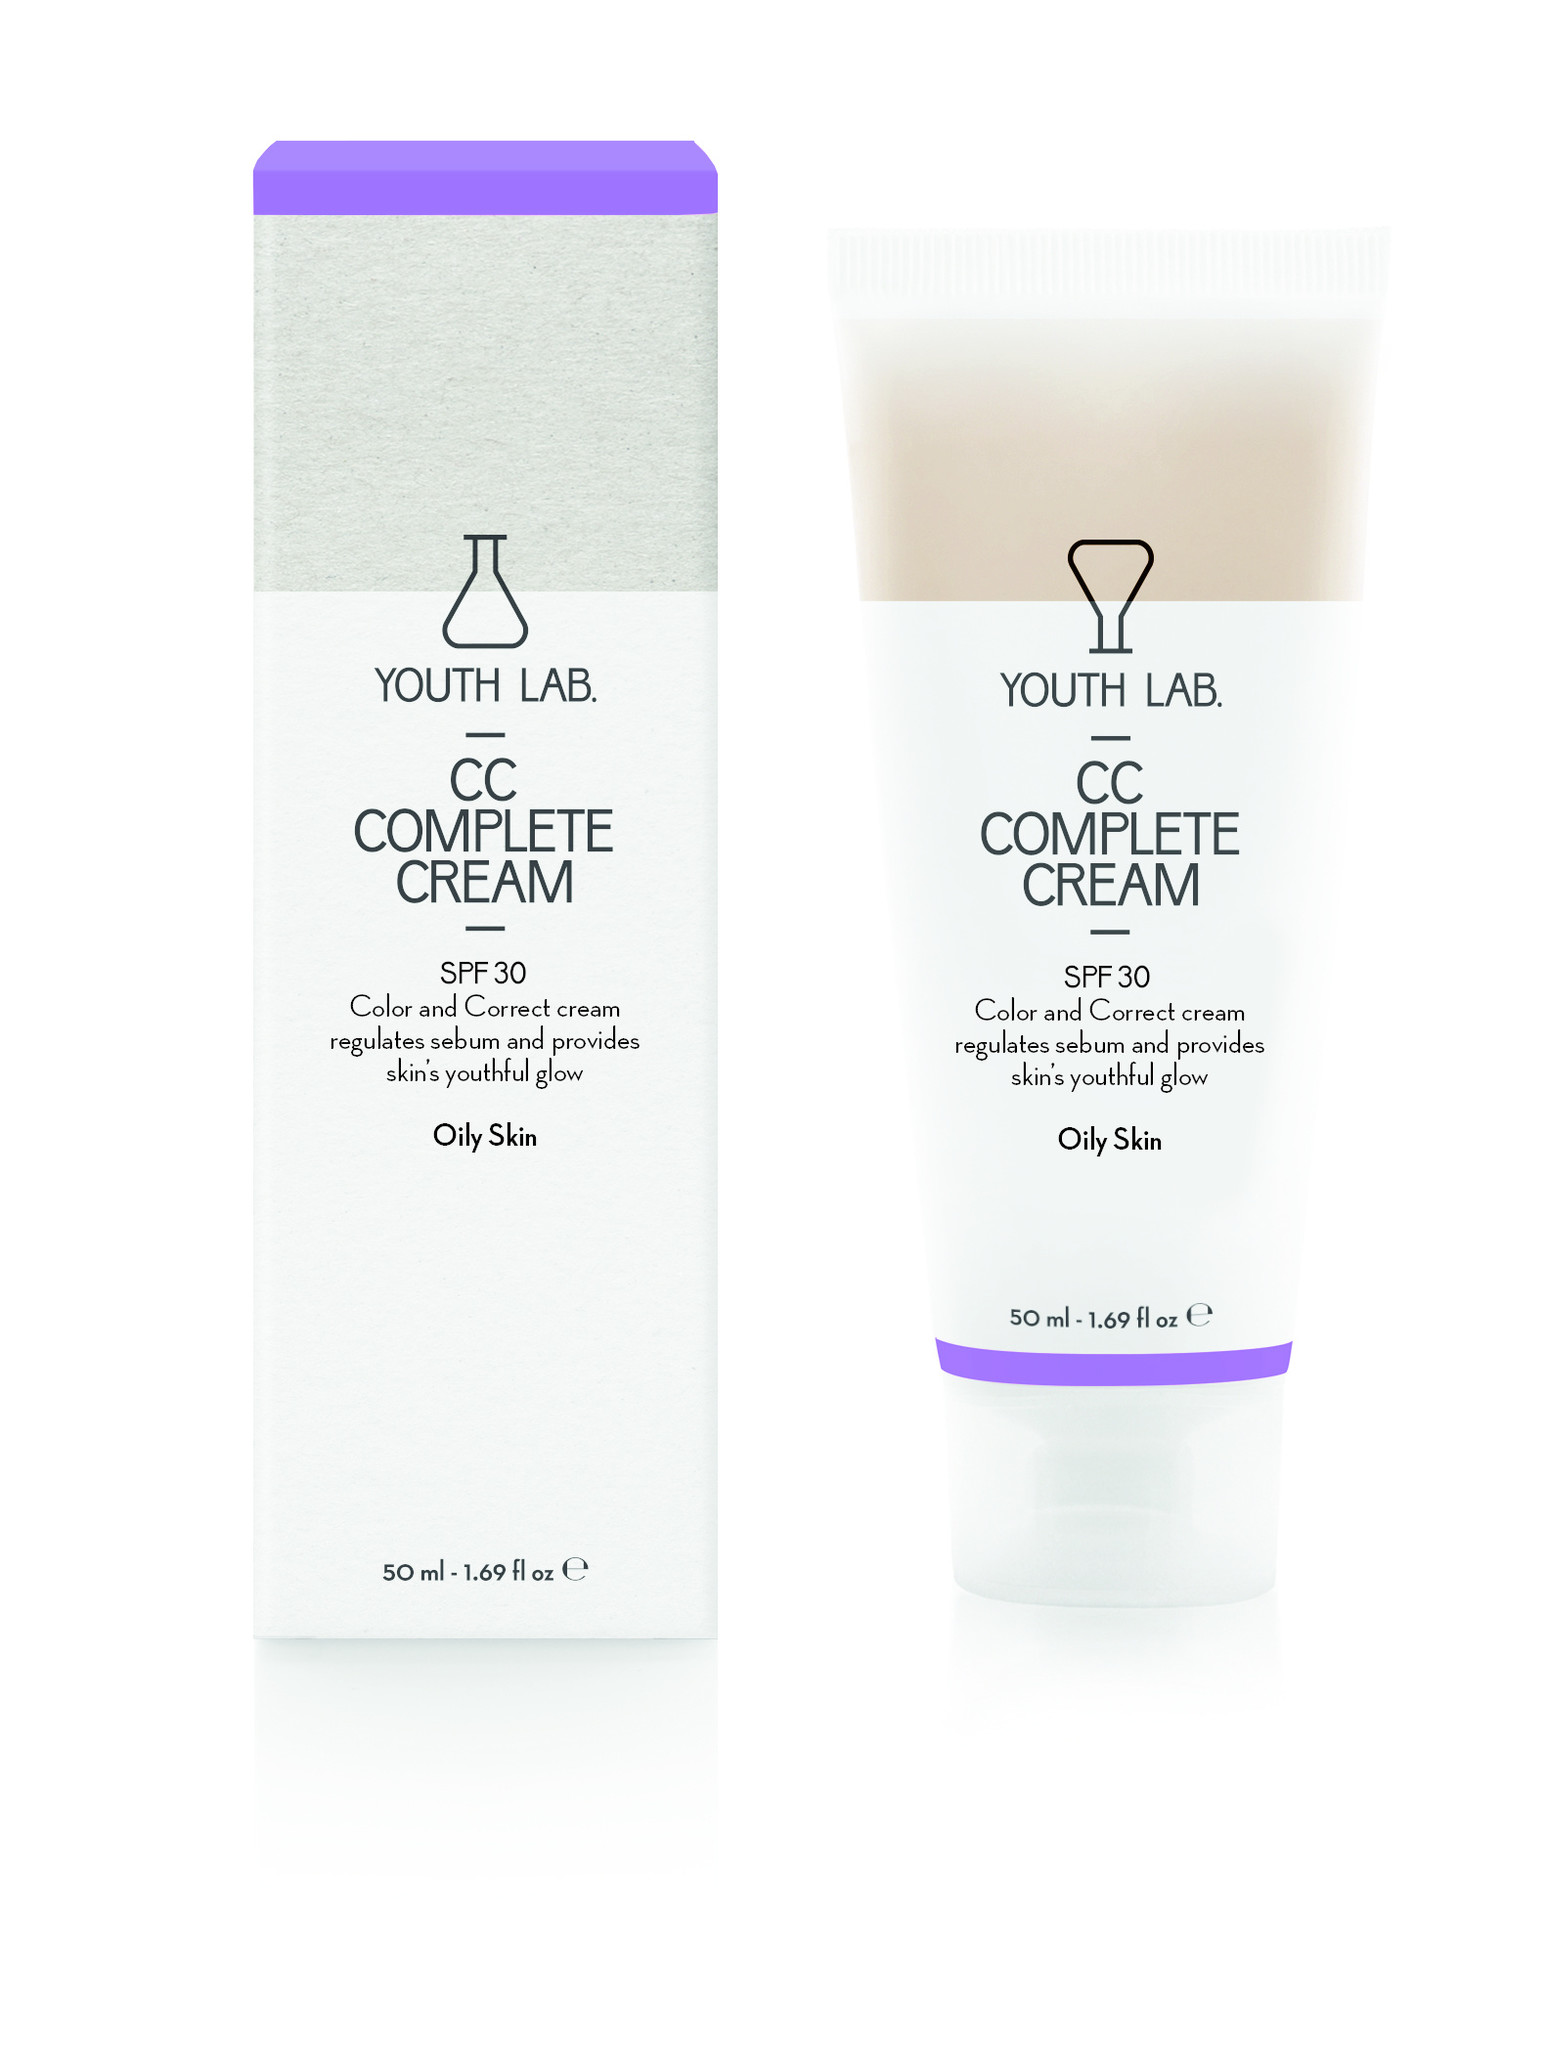 Youth Lab Youth lab CC complete cream SPF30 Combination_Oily Skin 50ml